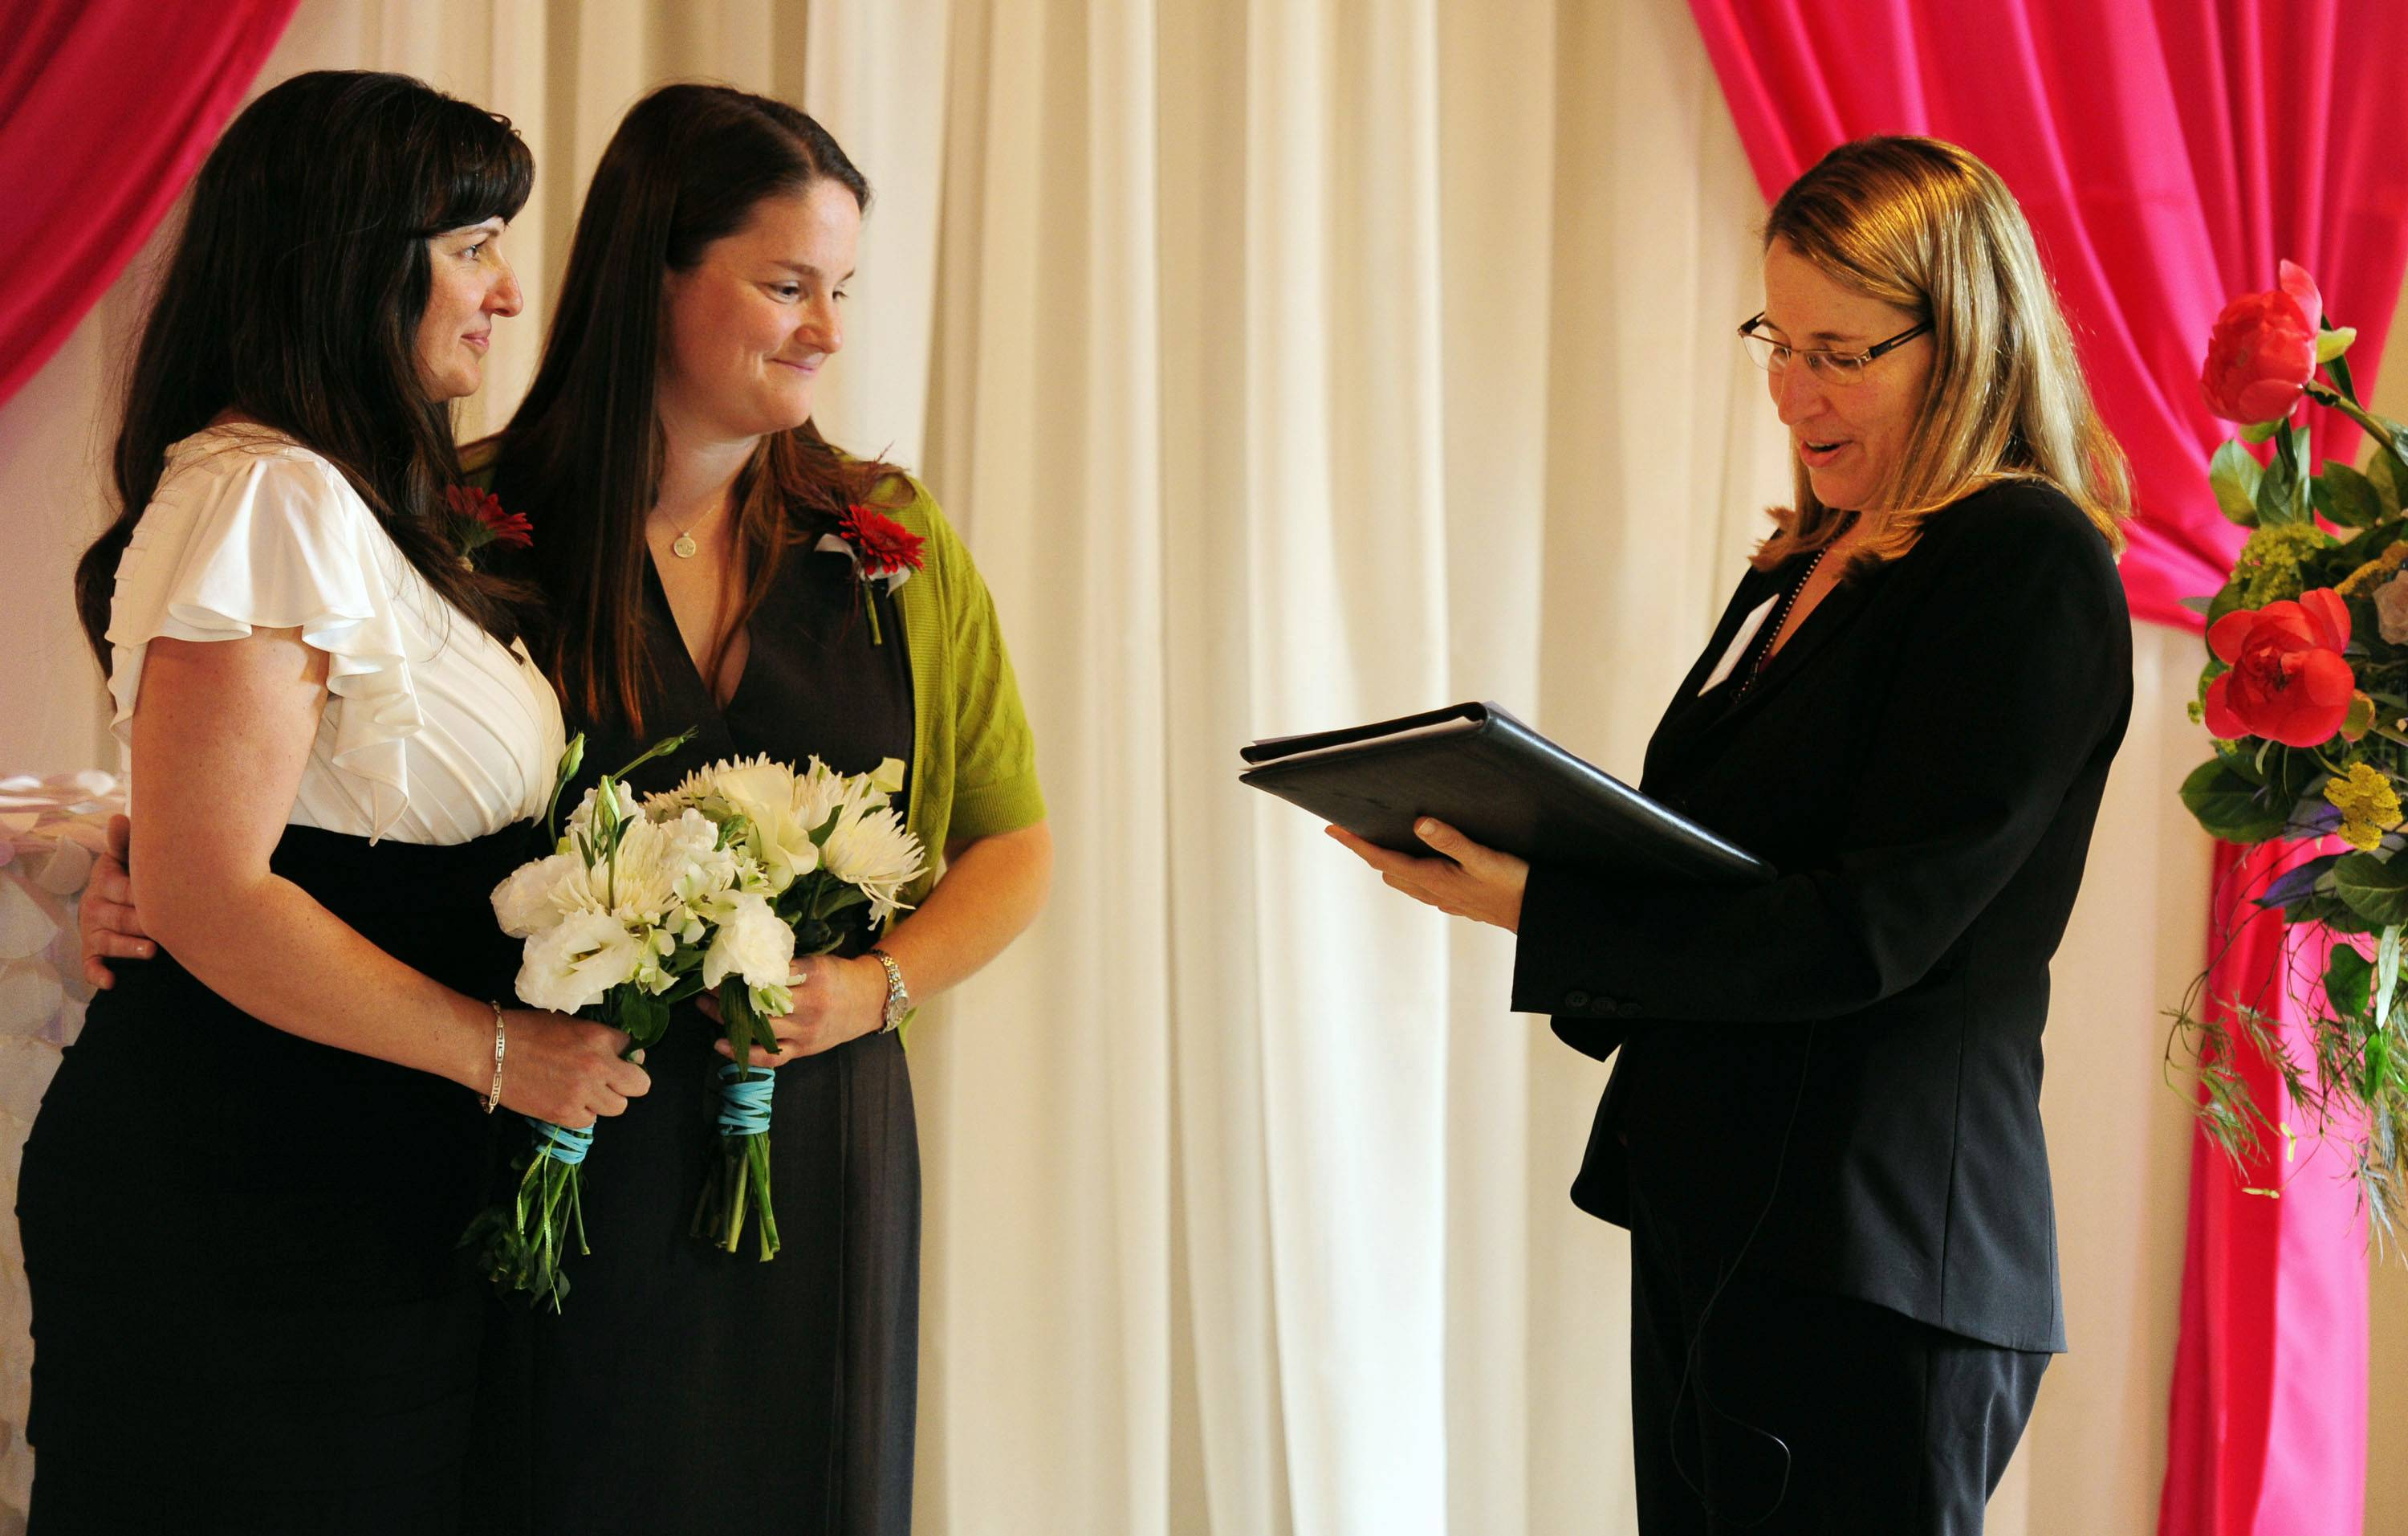 Julia Fraser, left, and Jessica Rohrbacher get married by Holly Pruett at the Melody Ballroom in Portland, Ore. on Monday, May. 19, 2014. Federal Judge Michael McShane released an opinion Monday on Oregon's Marriage Equality lawsuit that grants gay and lesbian couples the freedom to marry in Oregon.